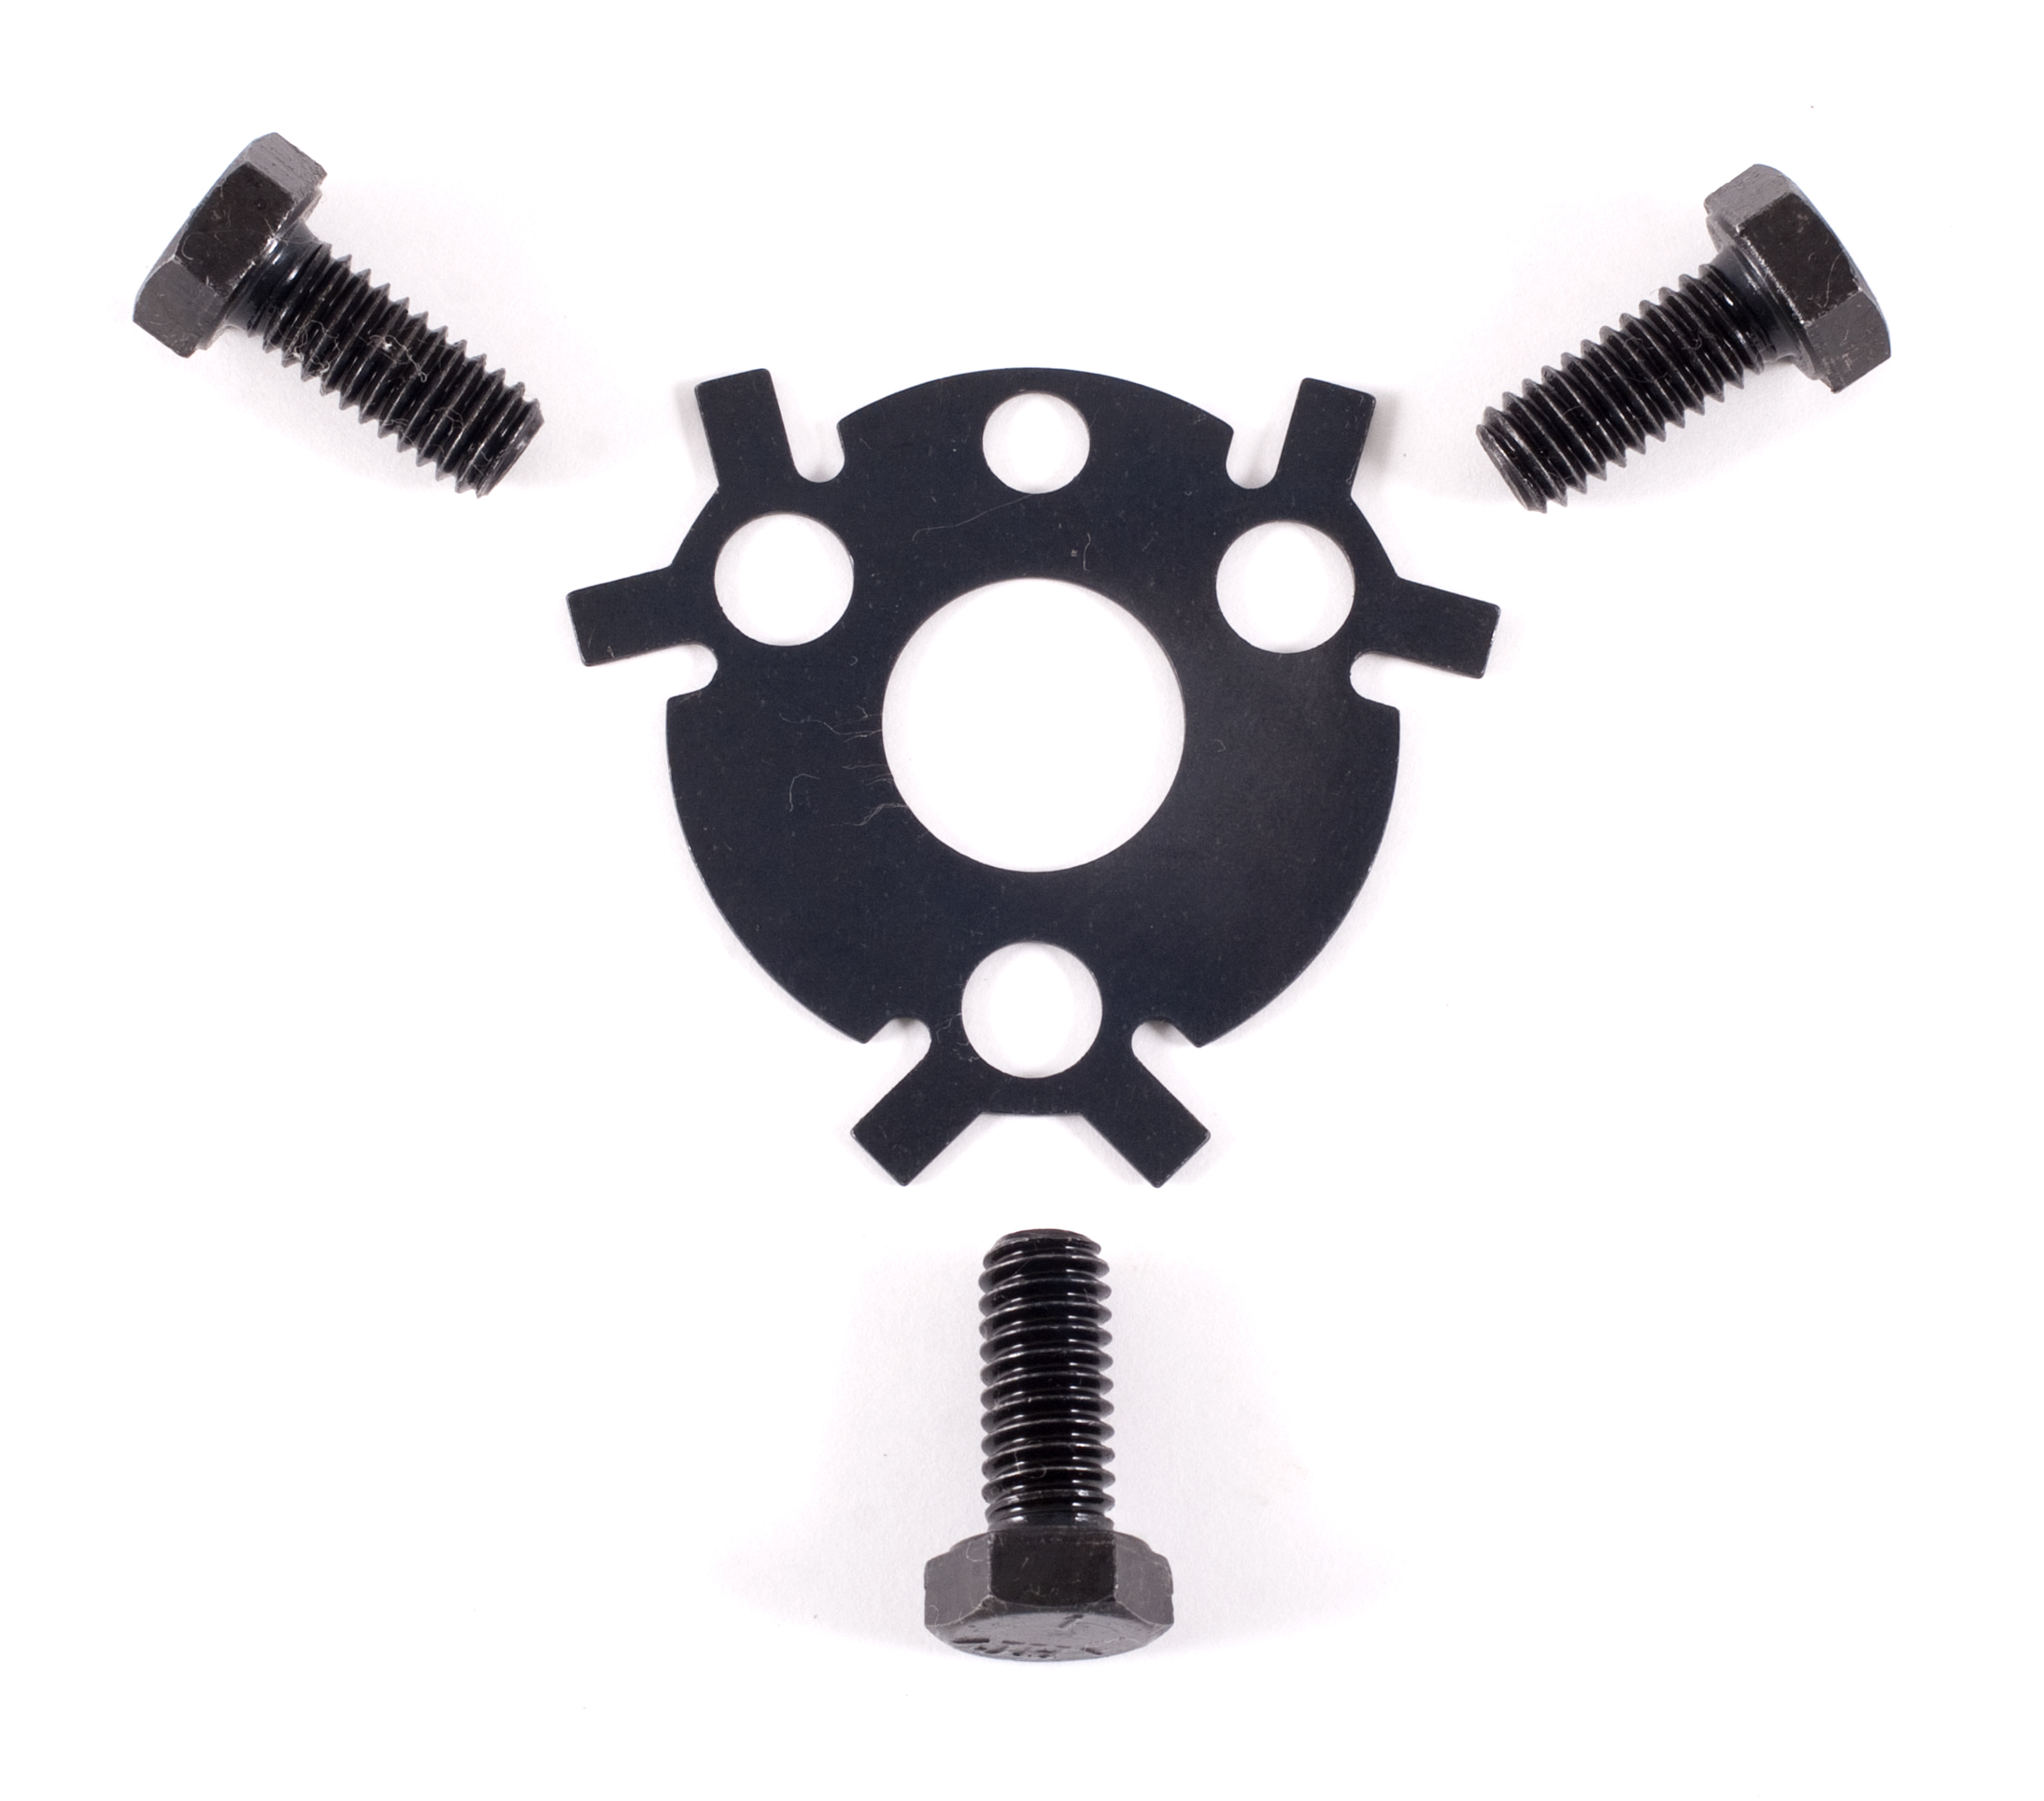 99168-1 Crane Cams Camshaft Bolt Lock Plate For Use With Small Block